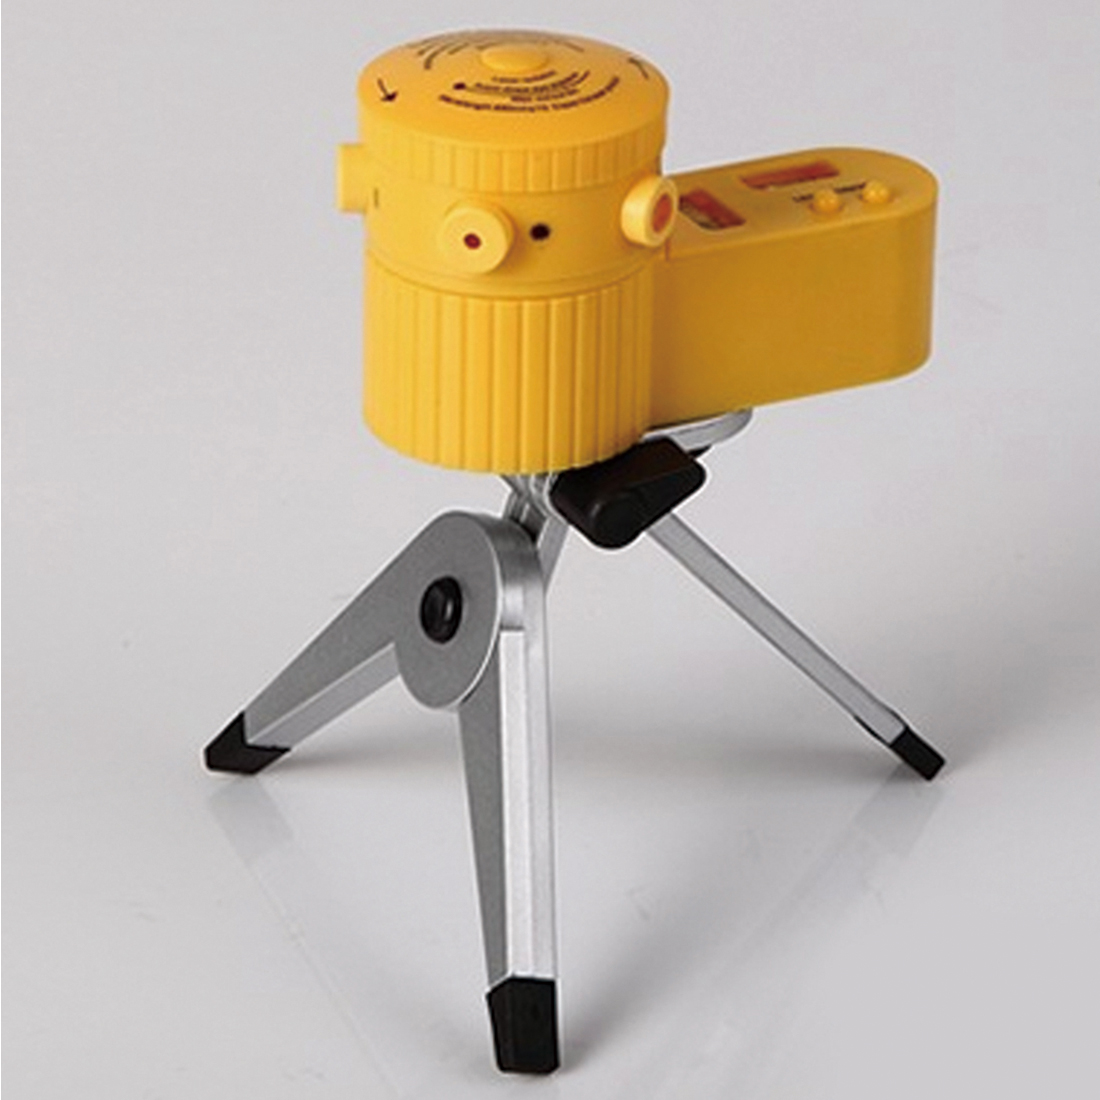 New Arrival Worldwide Multifunction Cross Laser Level Leveler Vertical Horizontal Line Tool With Tripod free shipping highly visible line laser kapro 810 with vertical and horizontal vials